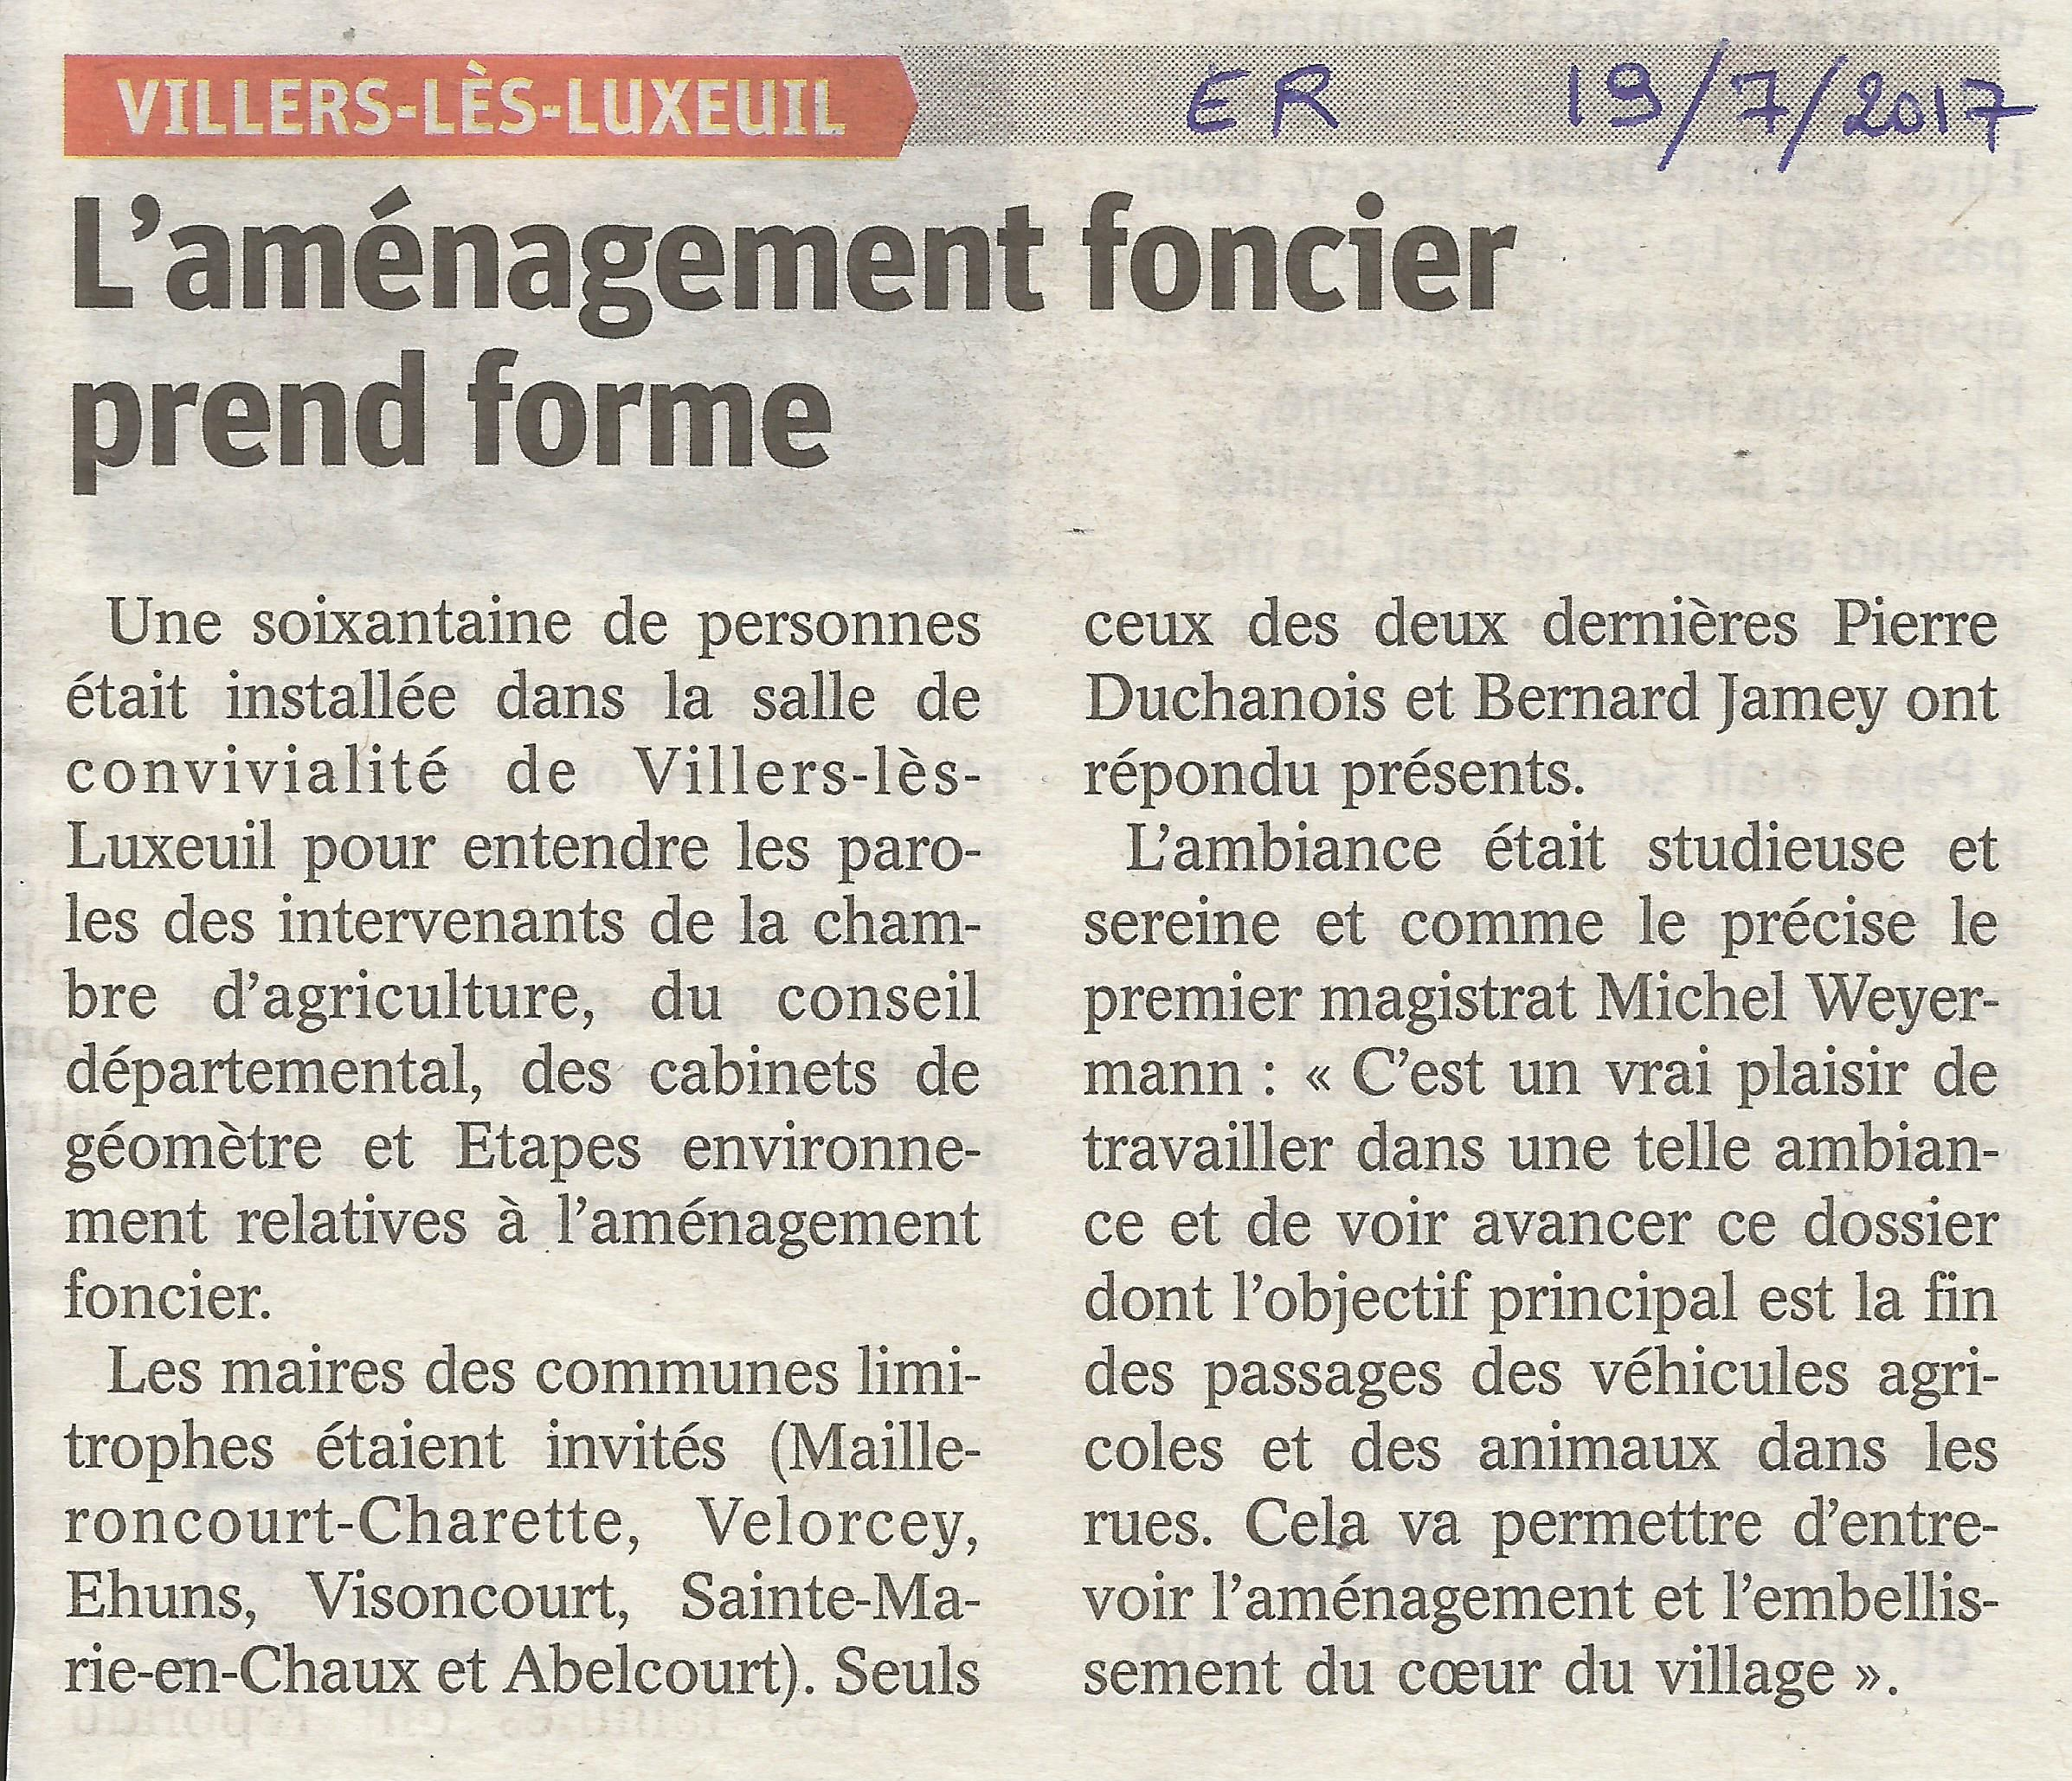 https://www.villers-les-luxeuil.com/projets/villers/files/images/2017_Mairie/Presse/2017_07_19.jpg